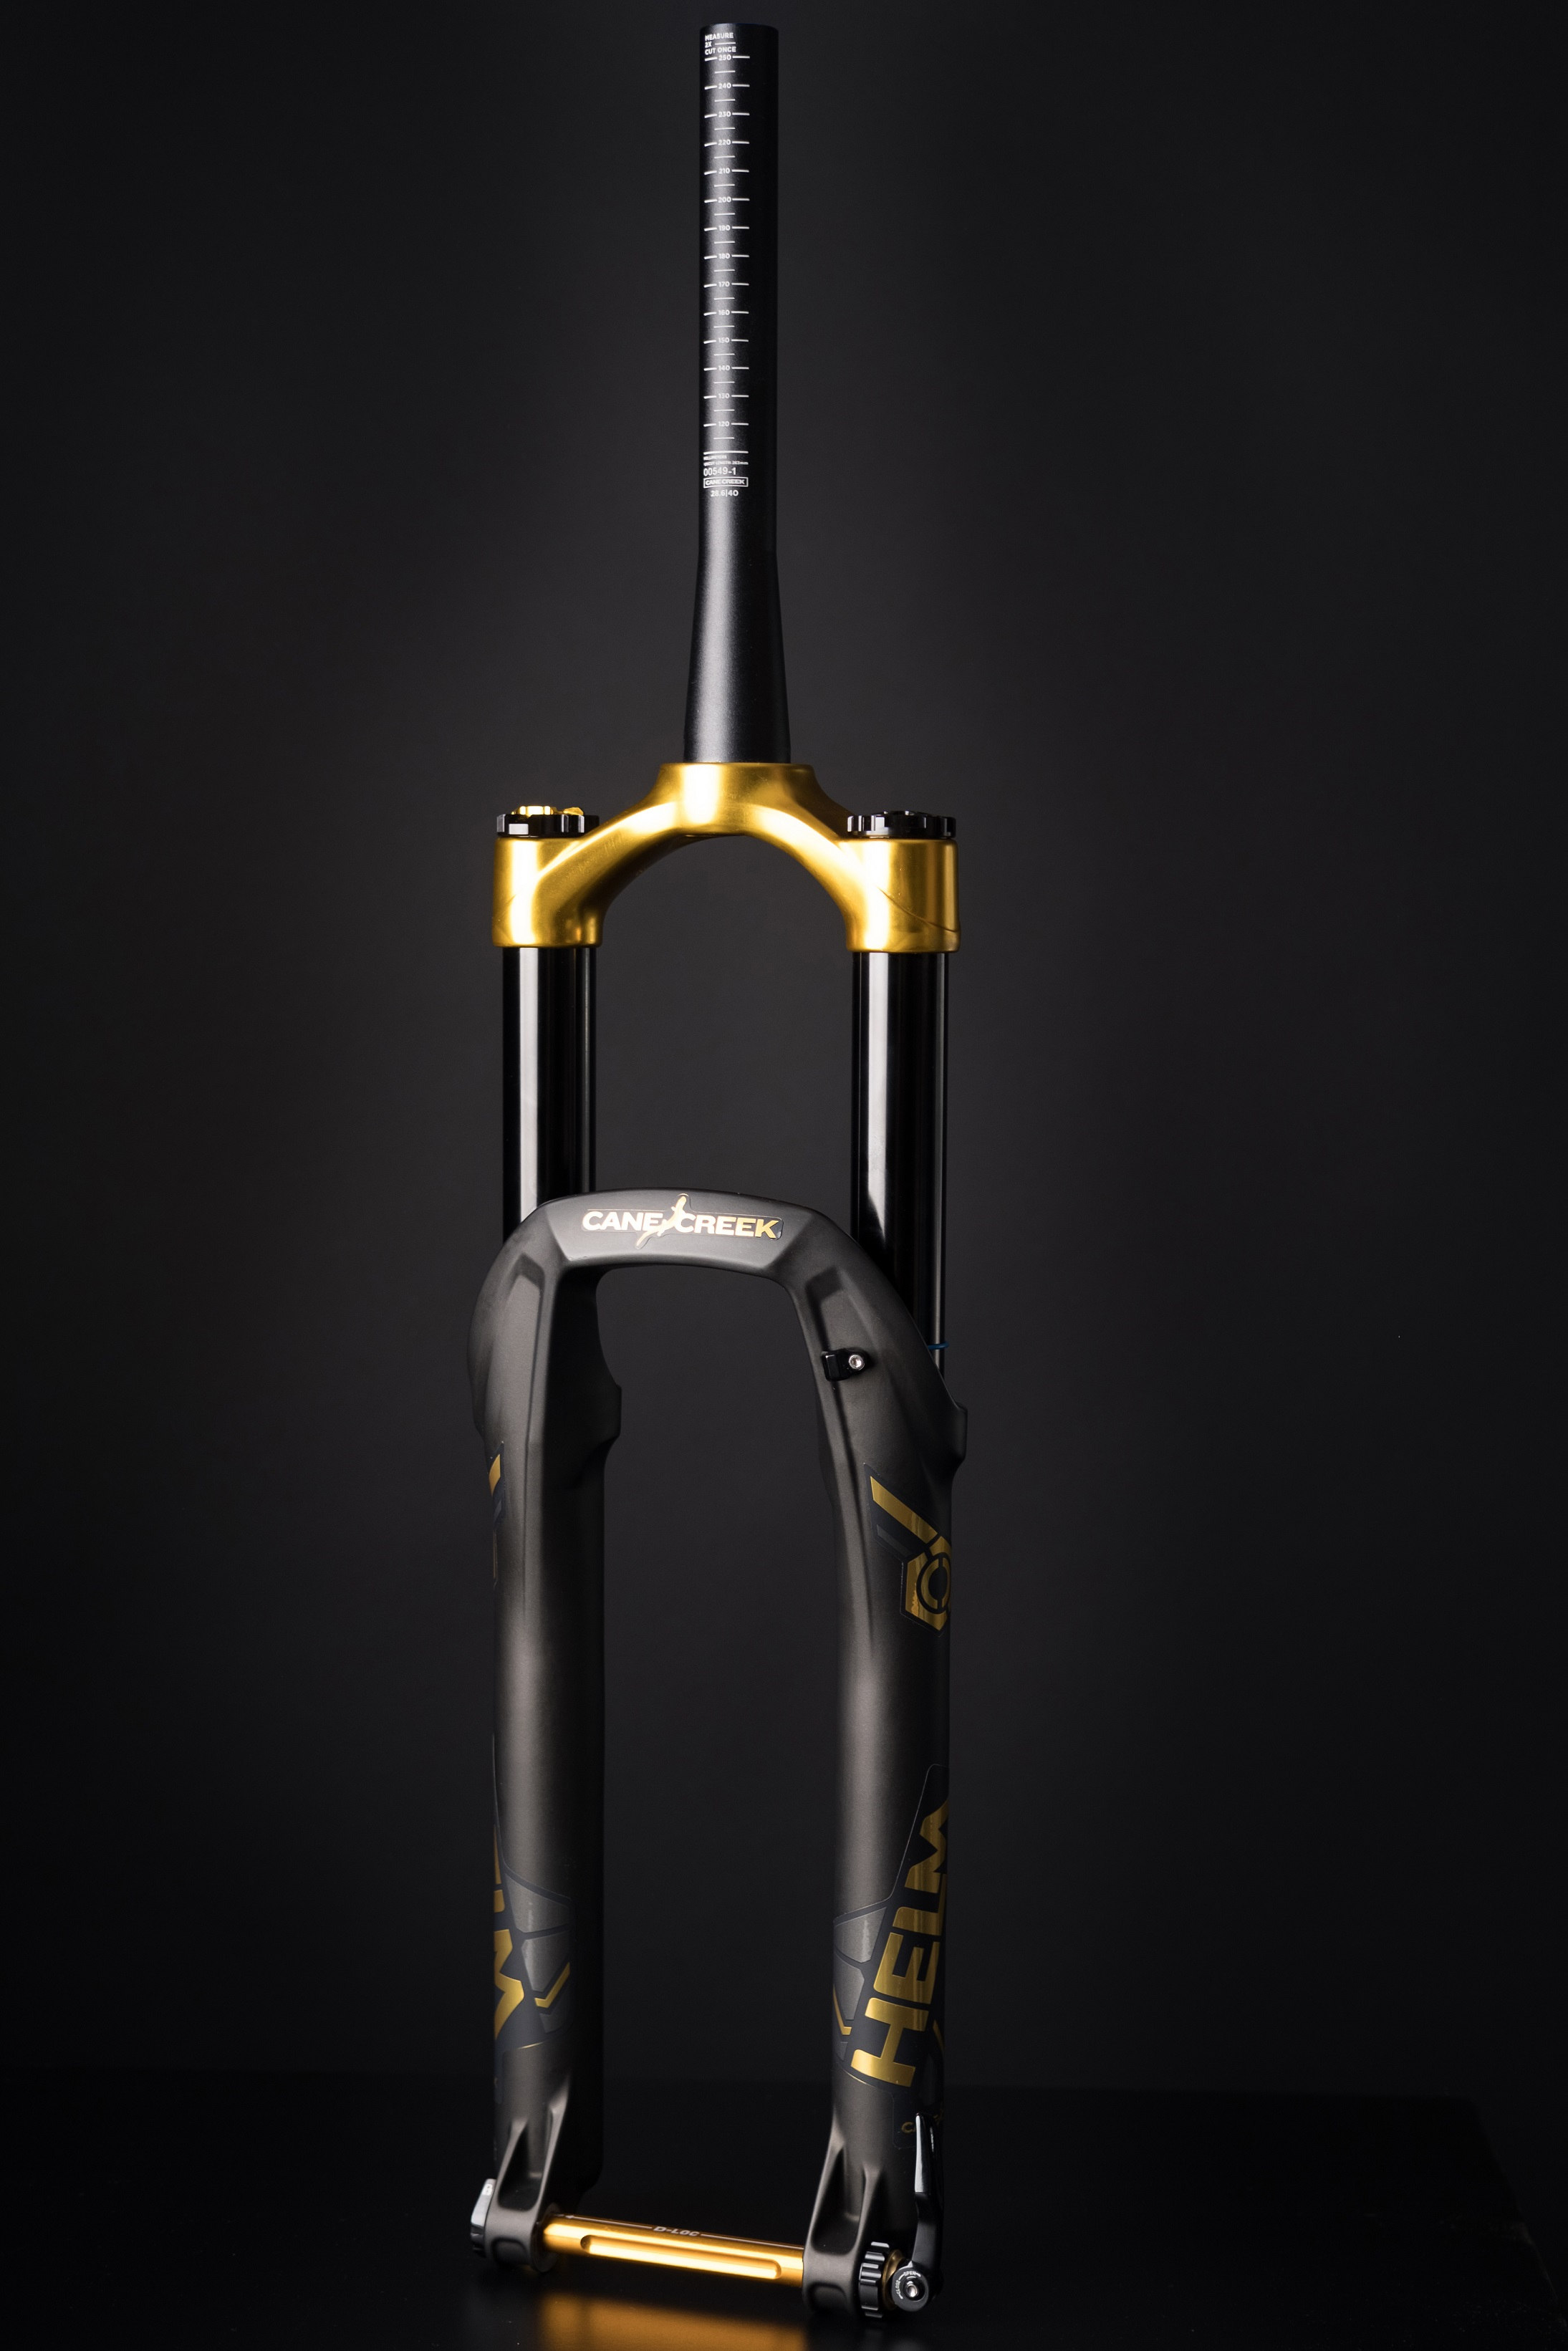 Cane Creek Limited Edition